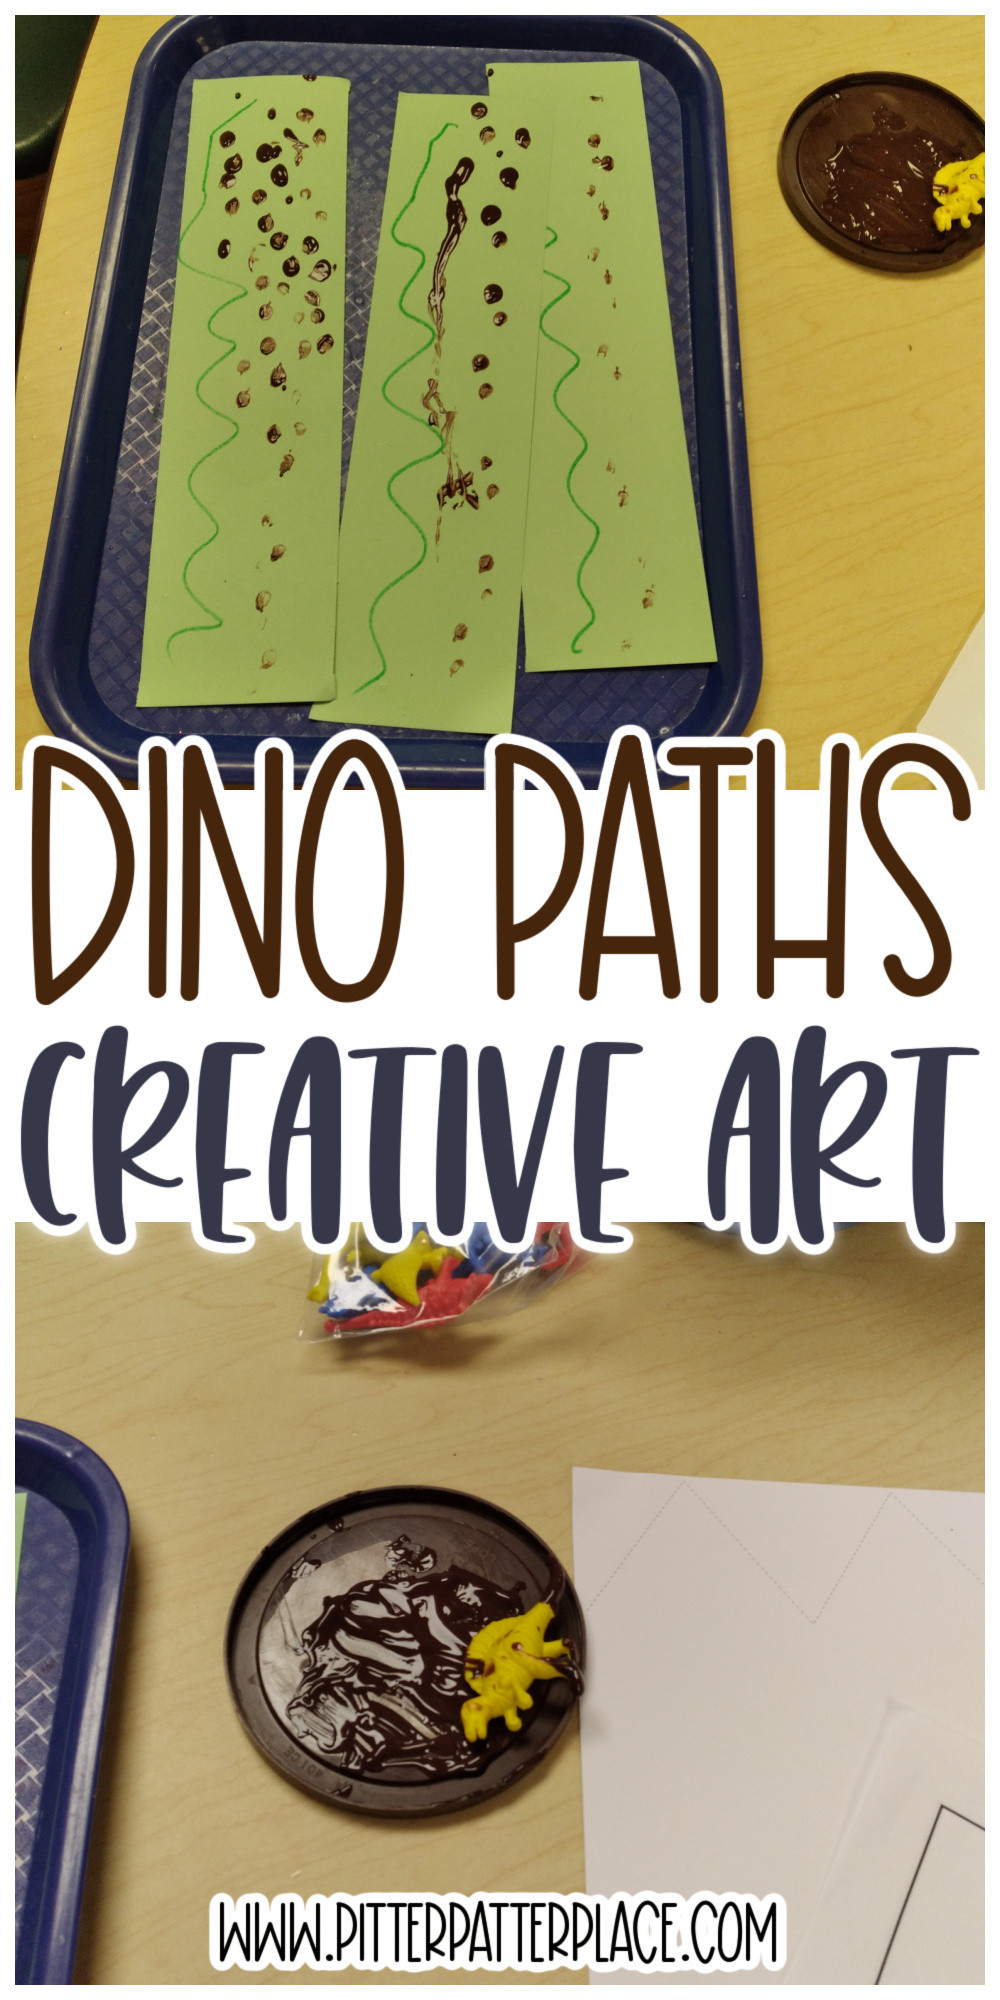 collage of dino paths images with text: Dino Paths Creative Art